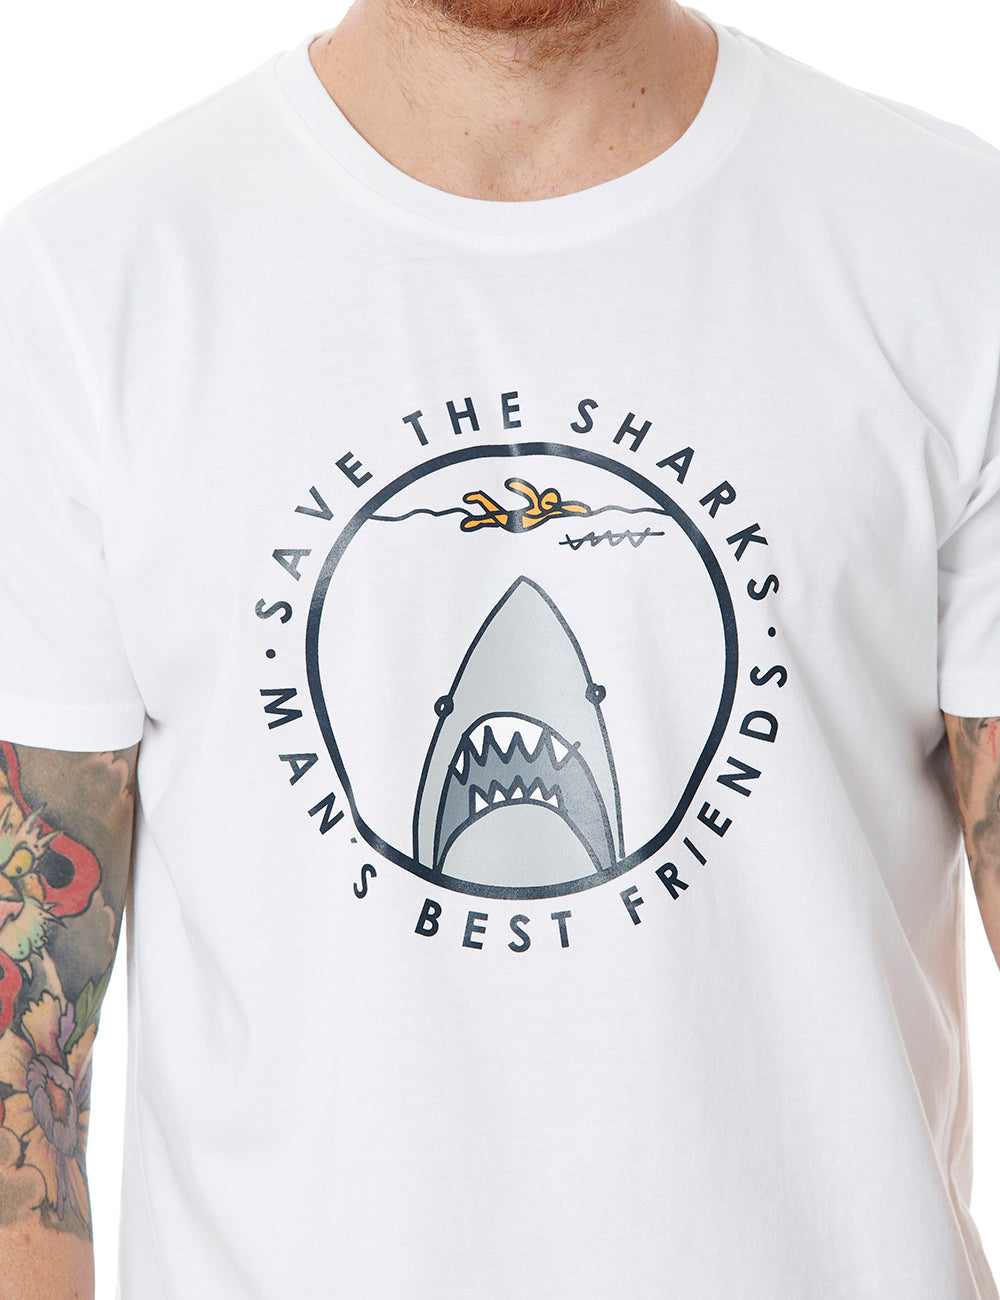 Save The Sharks callate la boca tshirt white